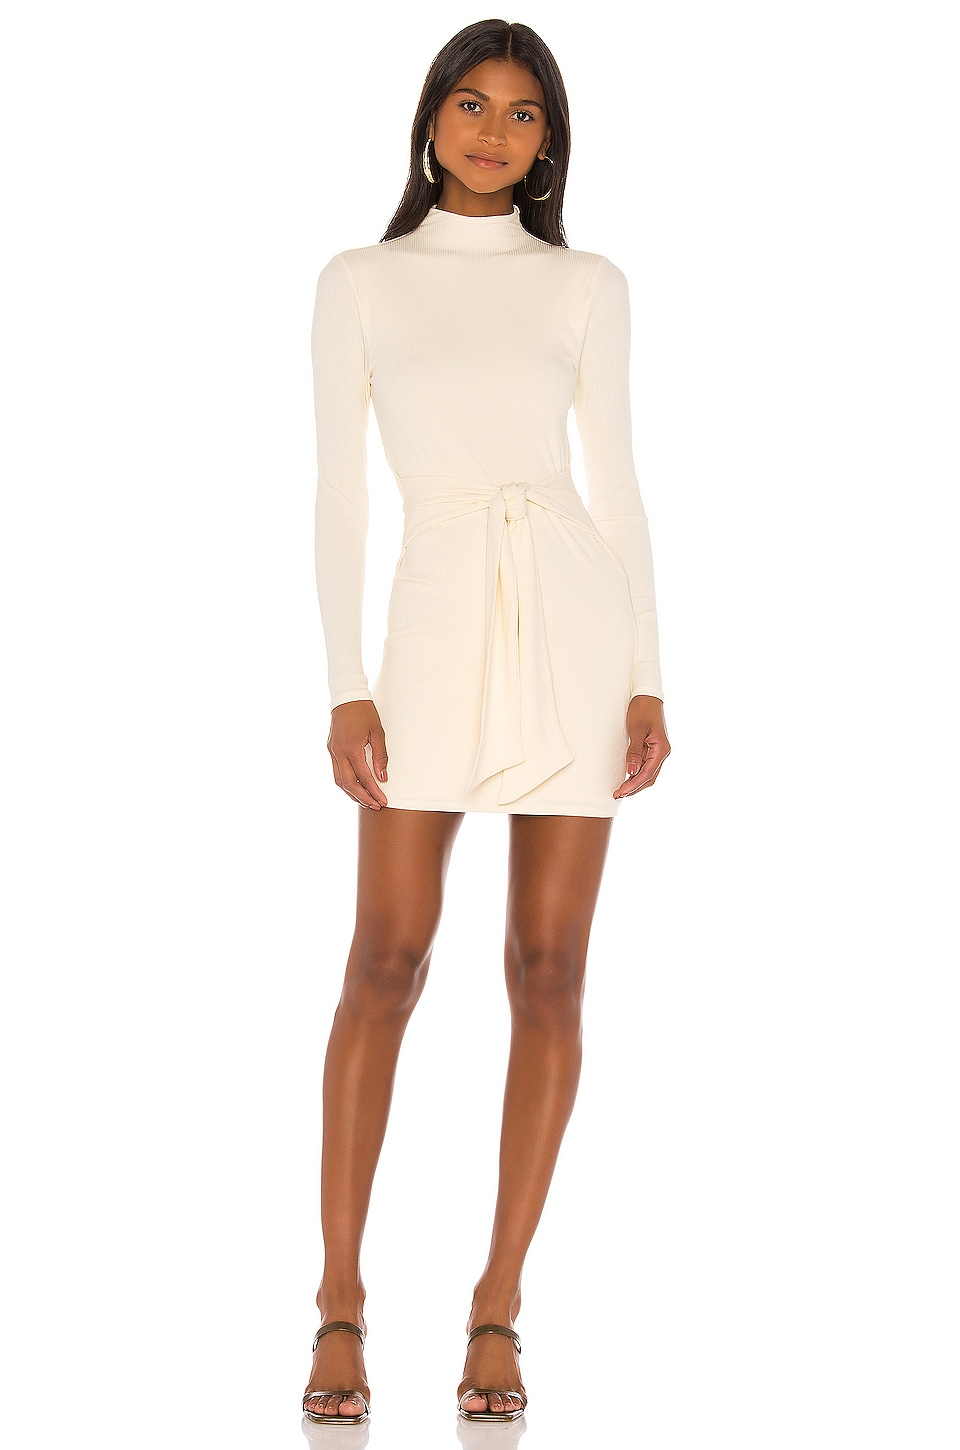 Privacy Please Gisele Mini Dress in Cream